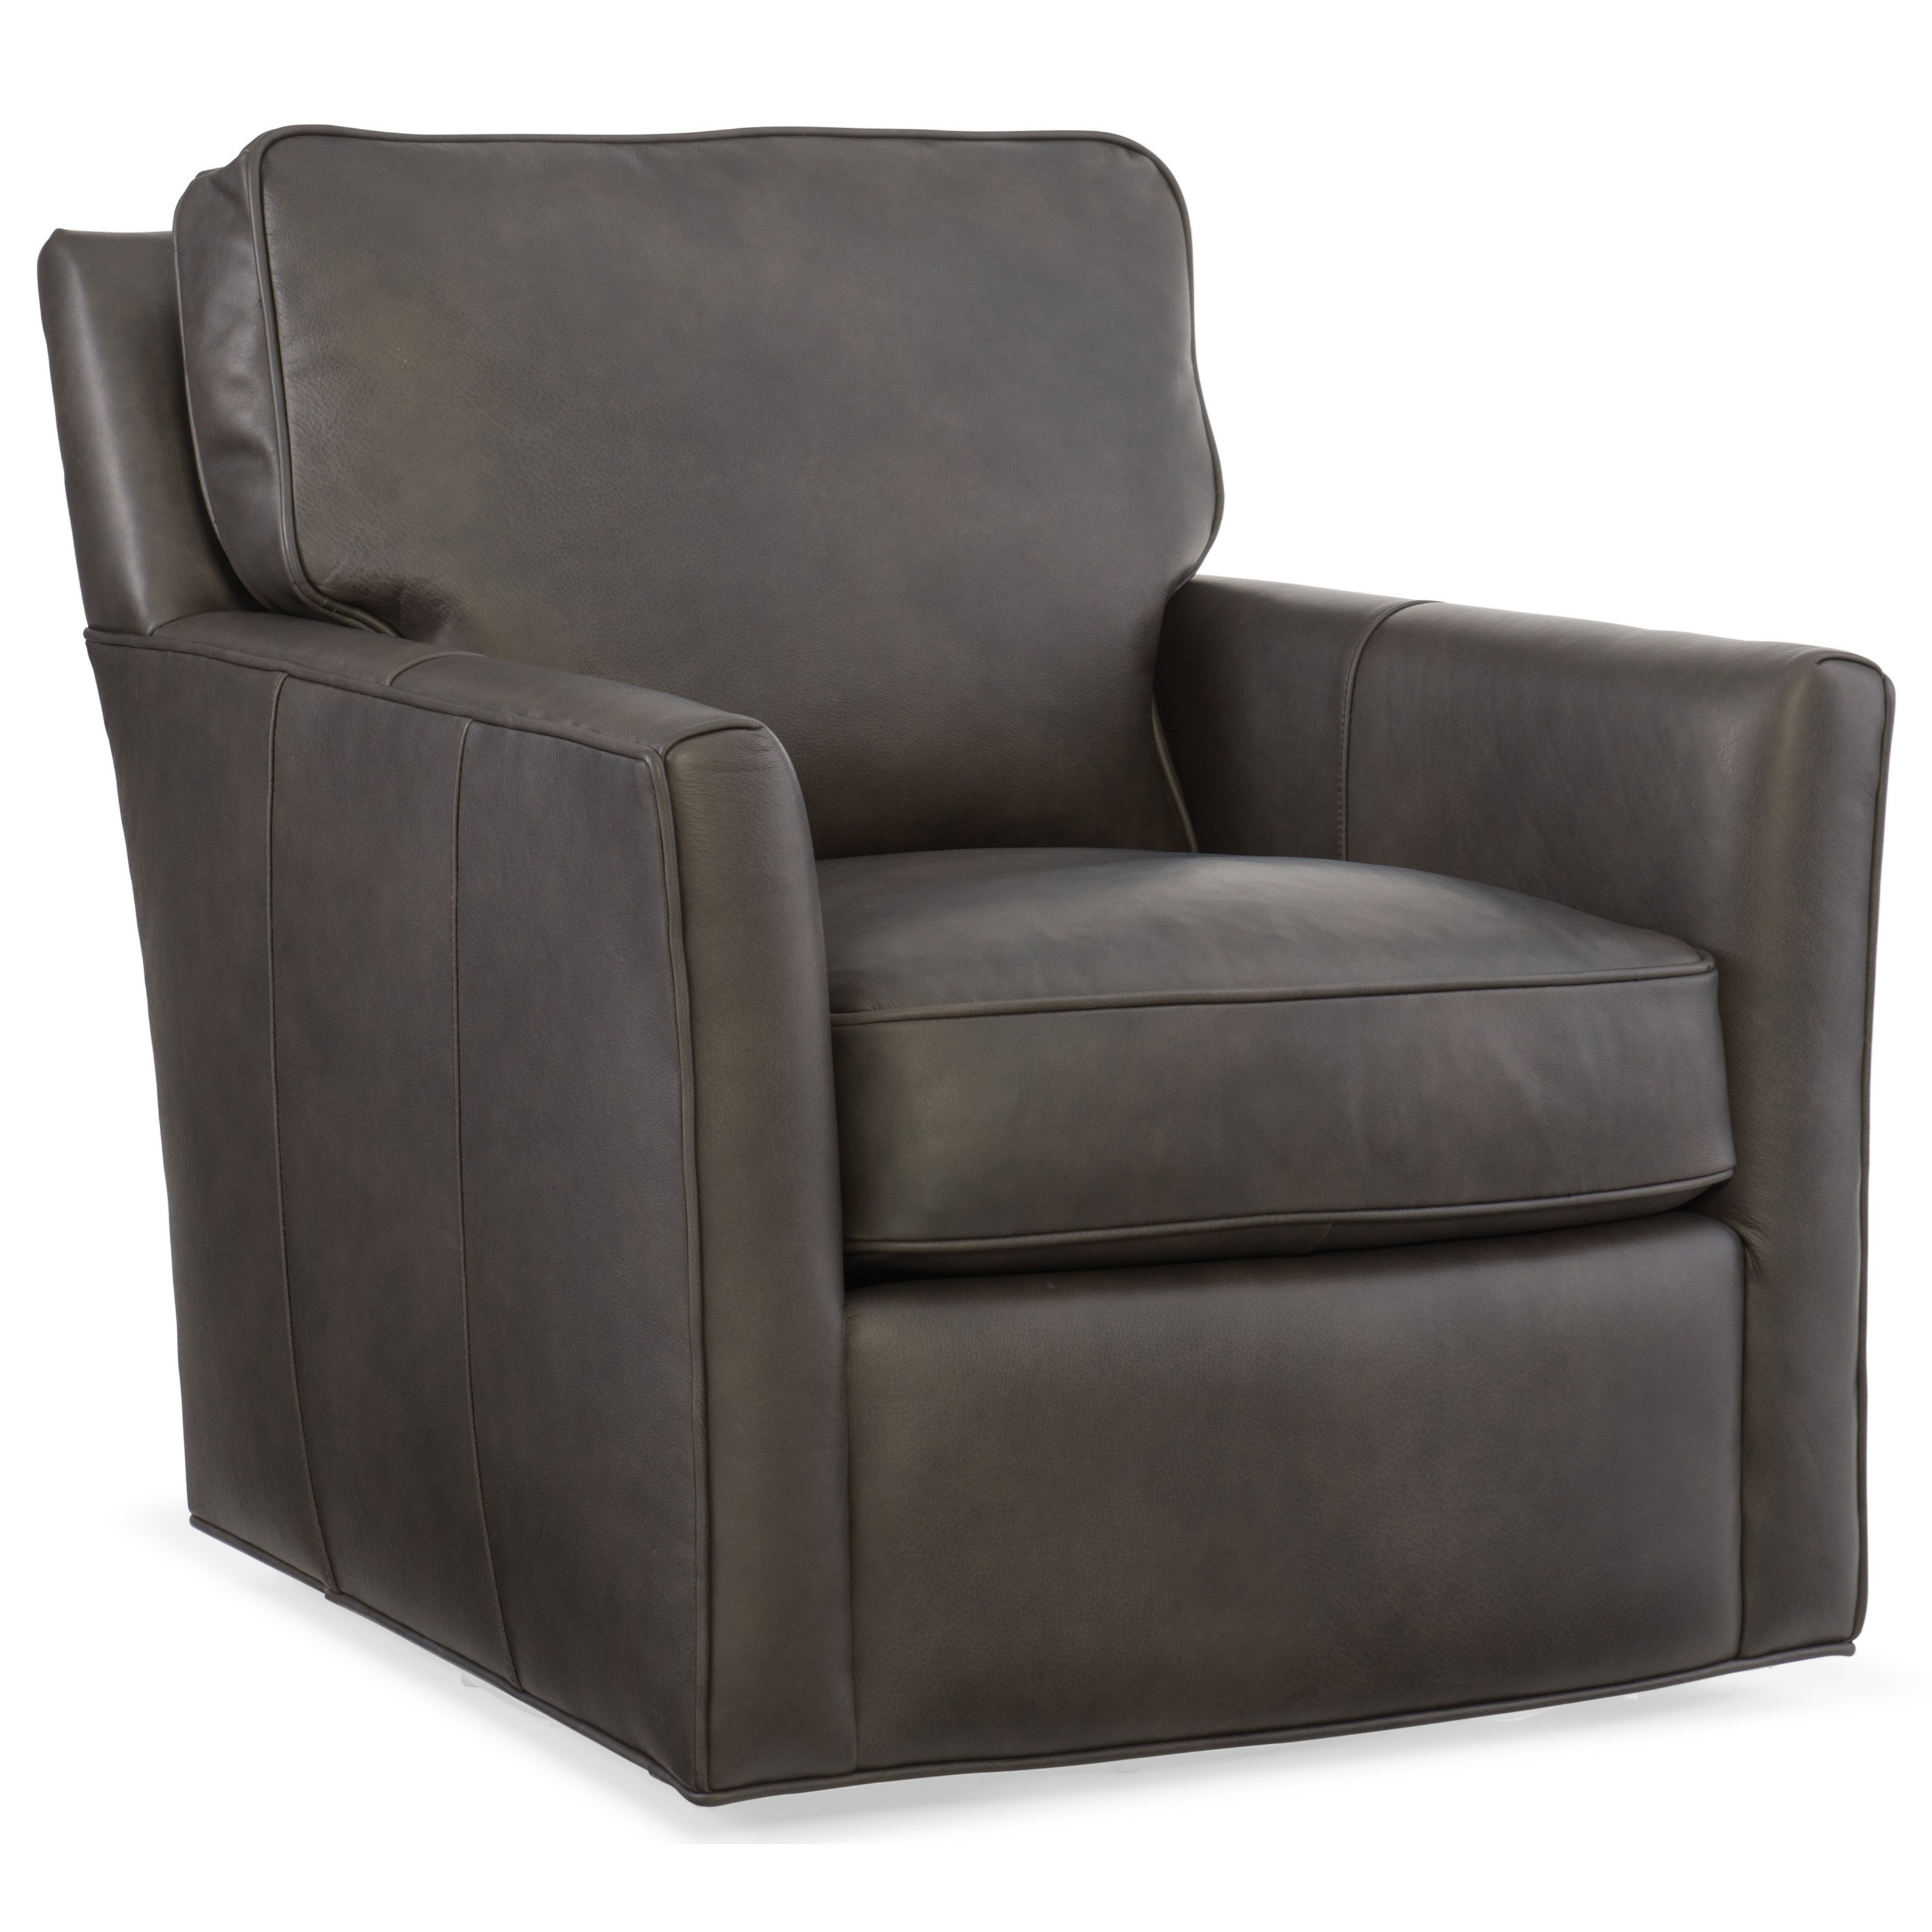 Club Chairs Mandy Swivel Club Chair by Hooker Furniture at Miller Waldrop Furniture and Decor